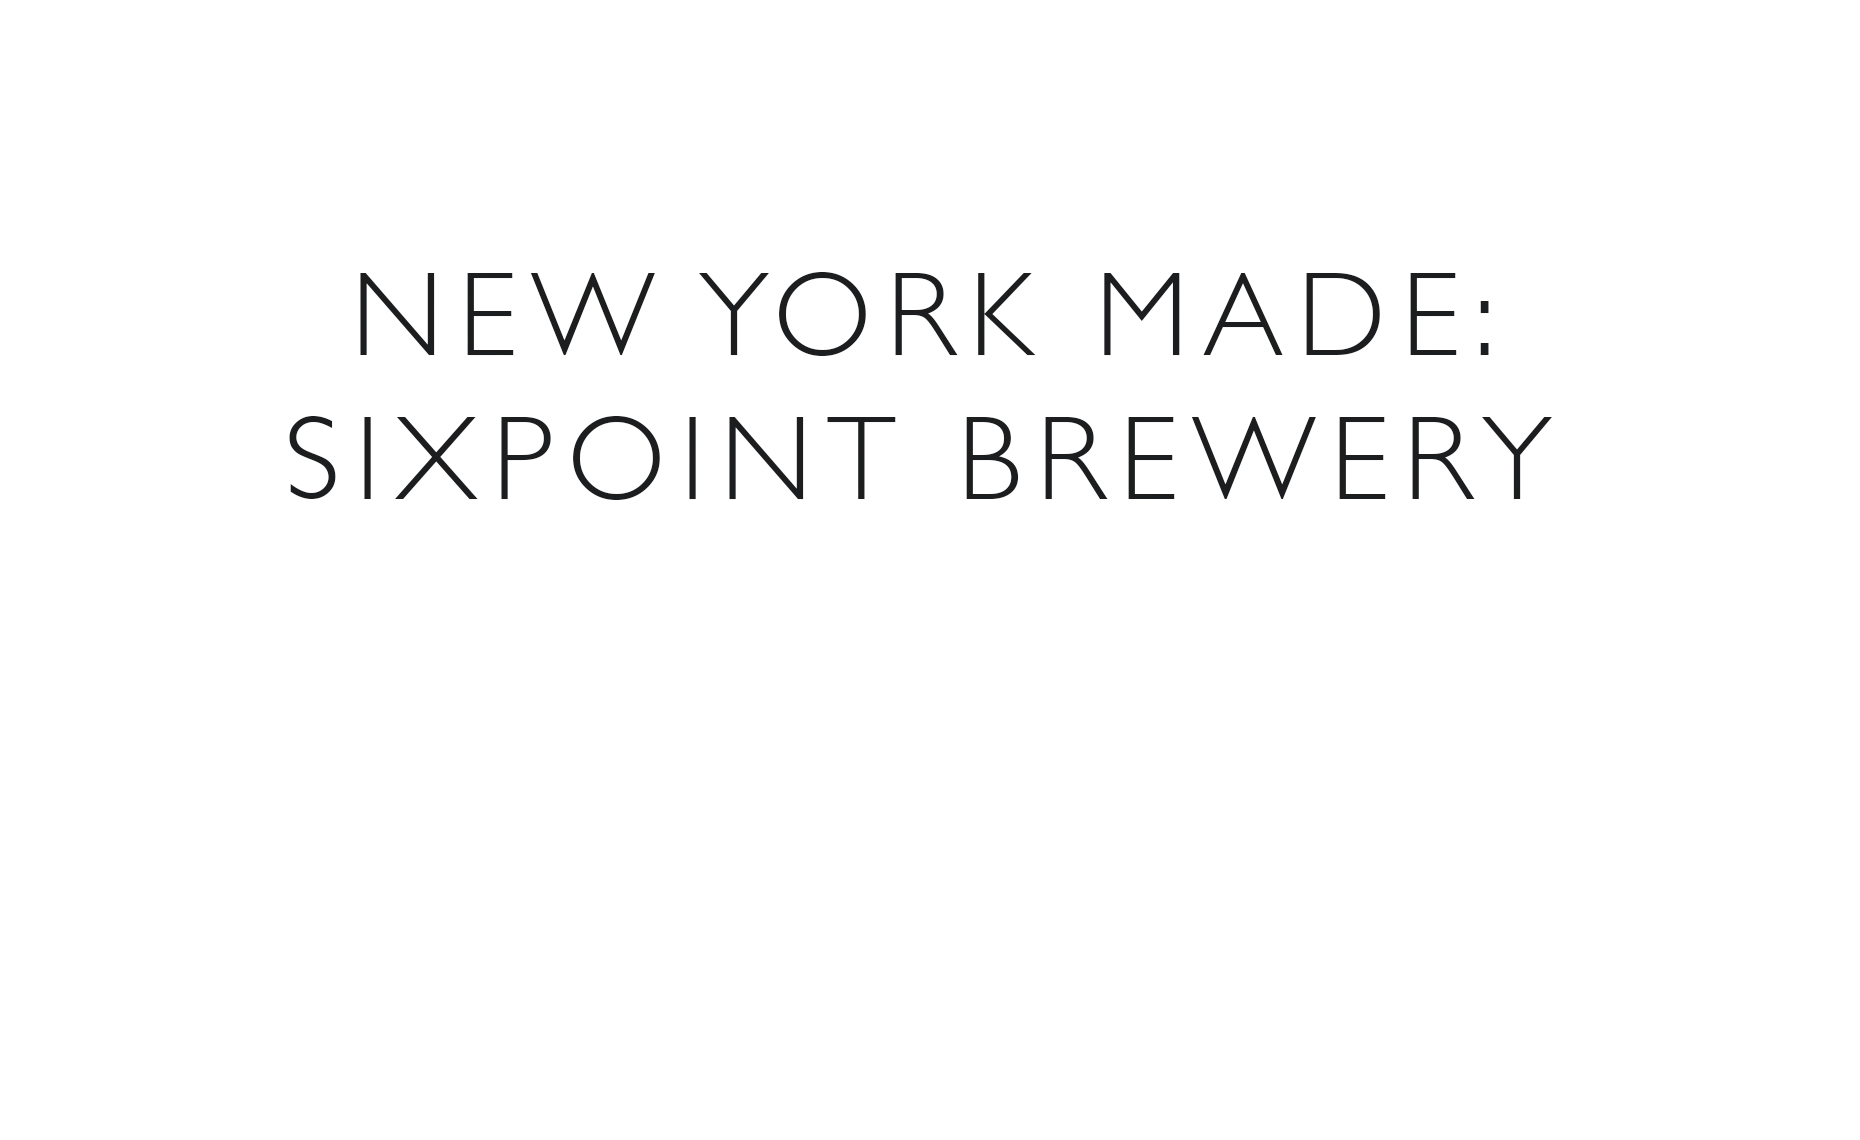 NYM_SixpointBrewery